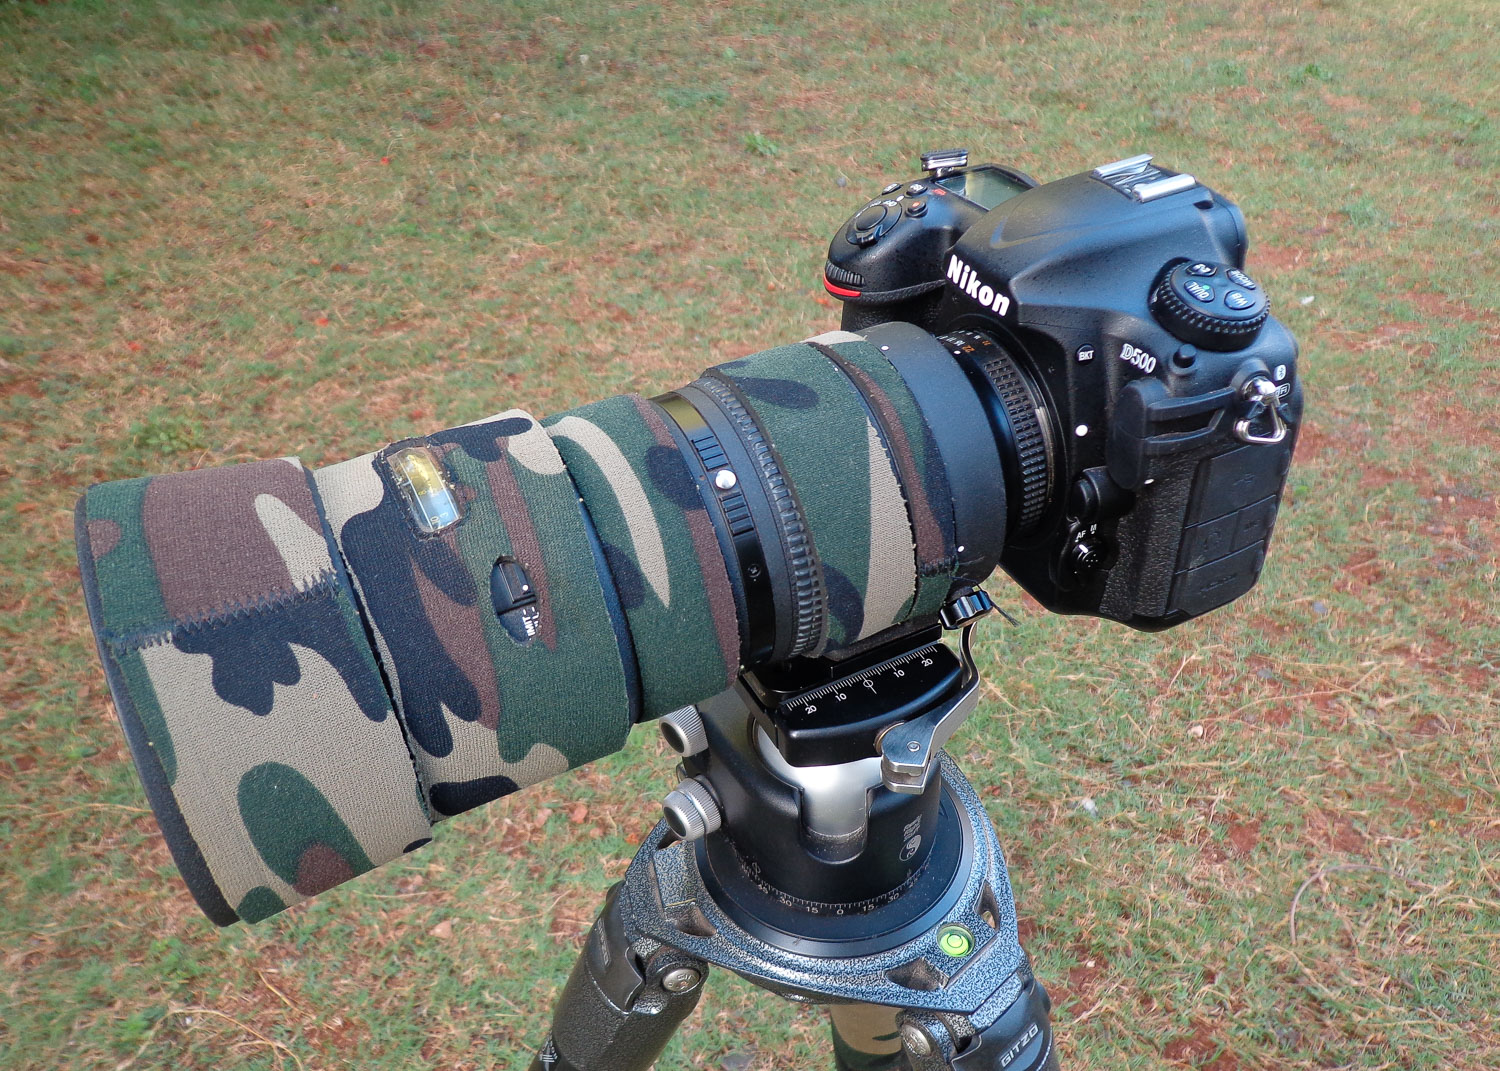 Image: Nikon D500 with the Nikon 80-200 f/2.8 lens mounted on Gitzo Tripod